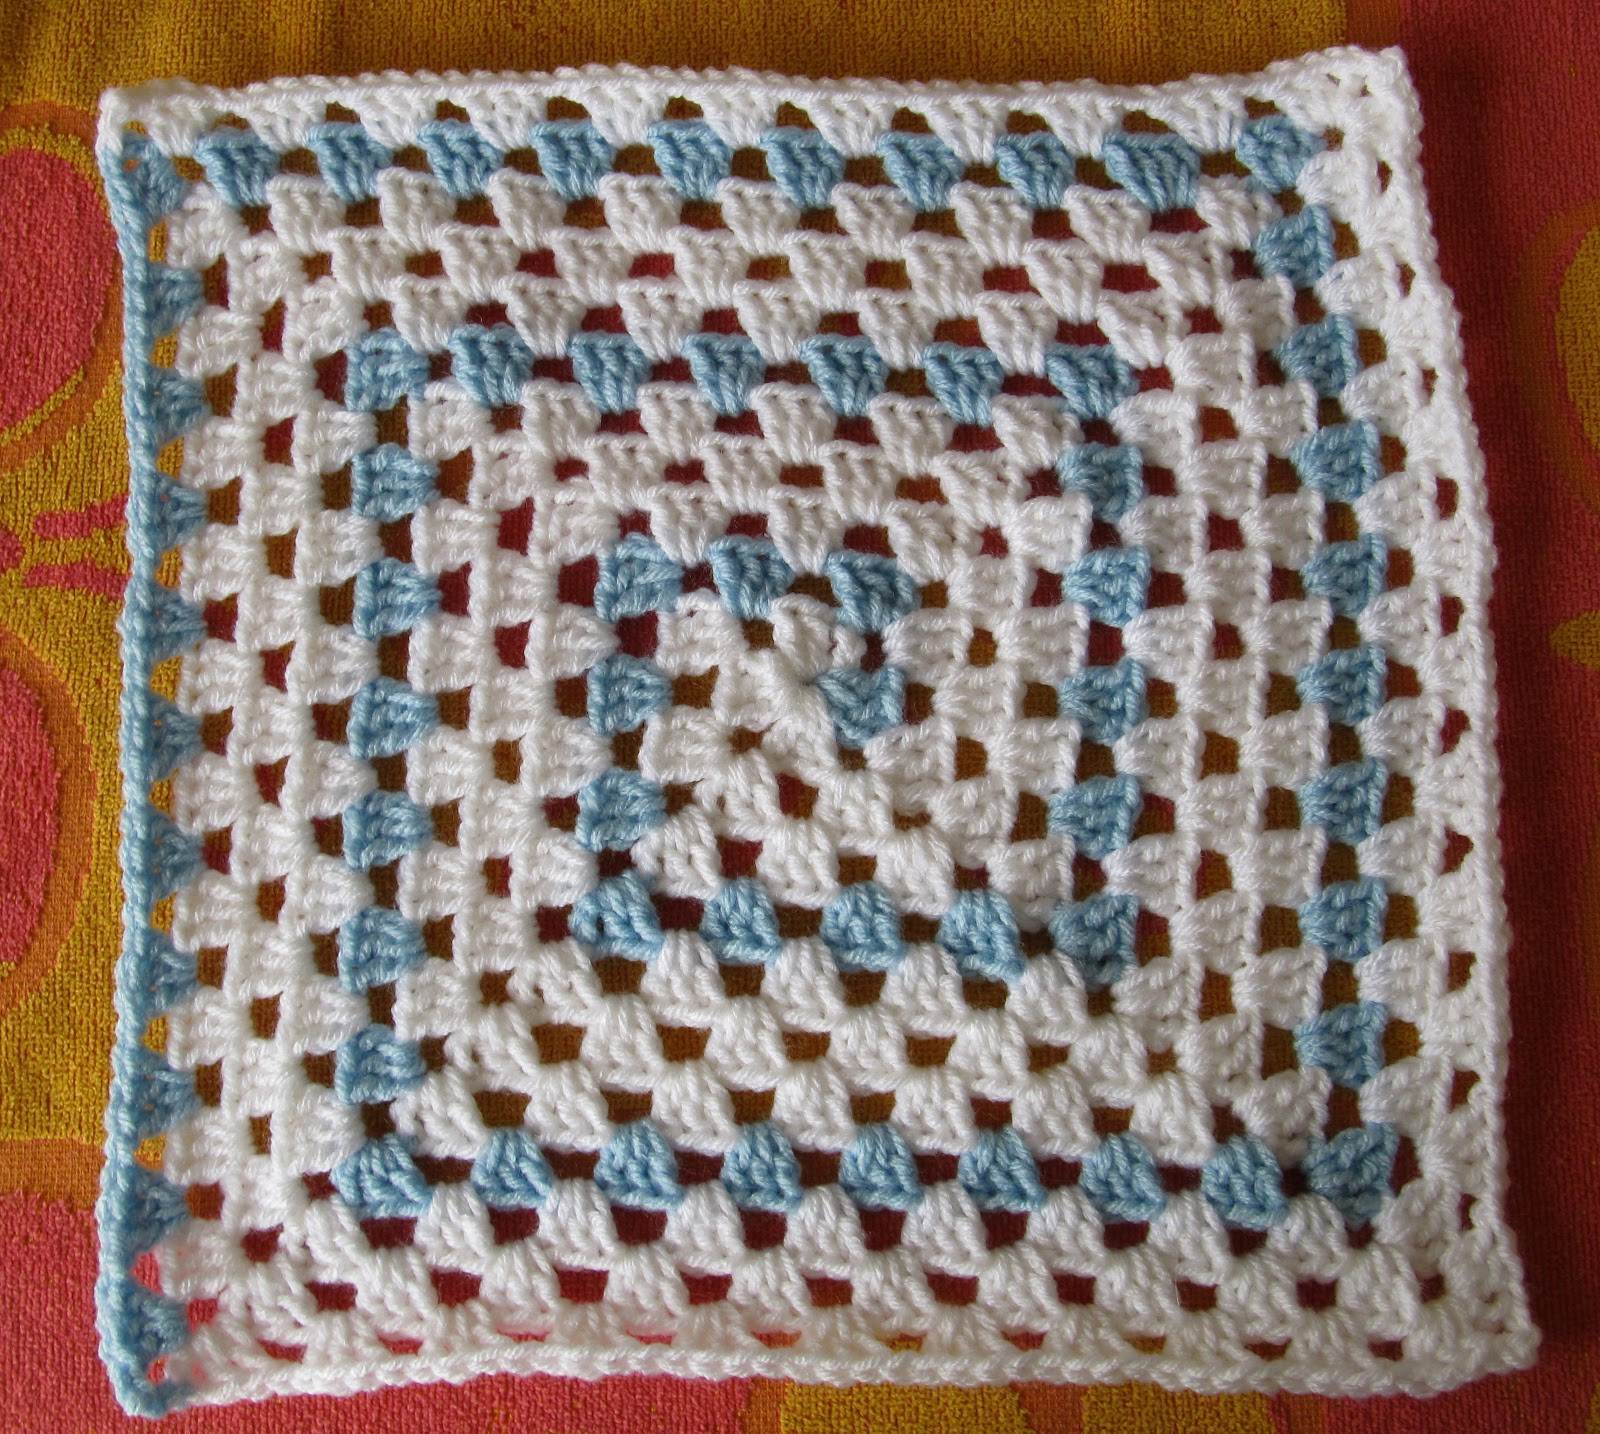 SmoothFox Crochet and Knit SmoothFox s Spiral Granny